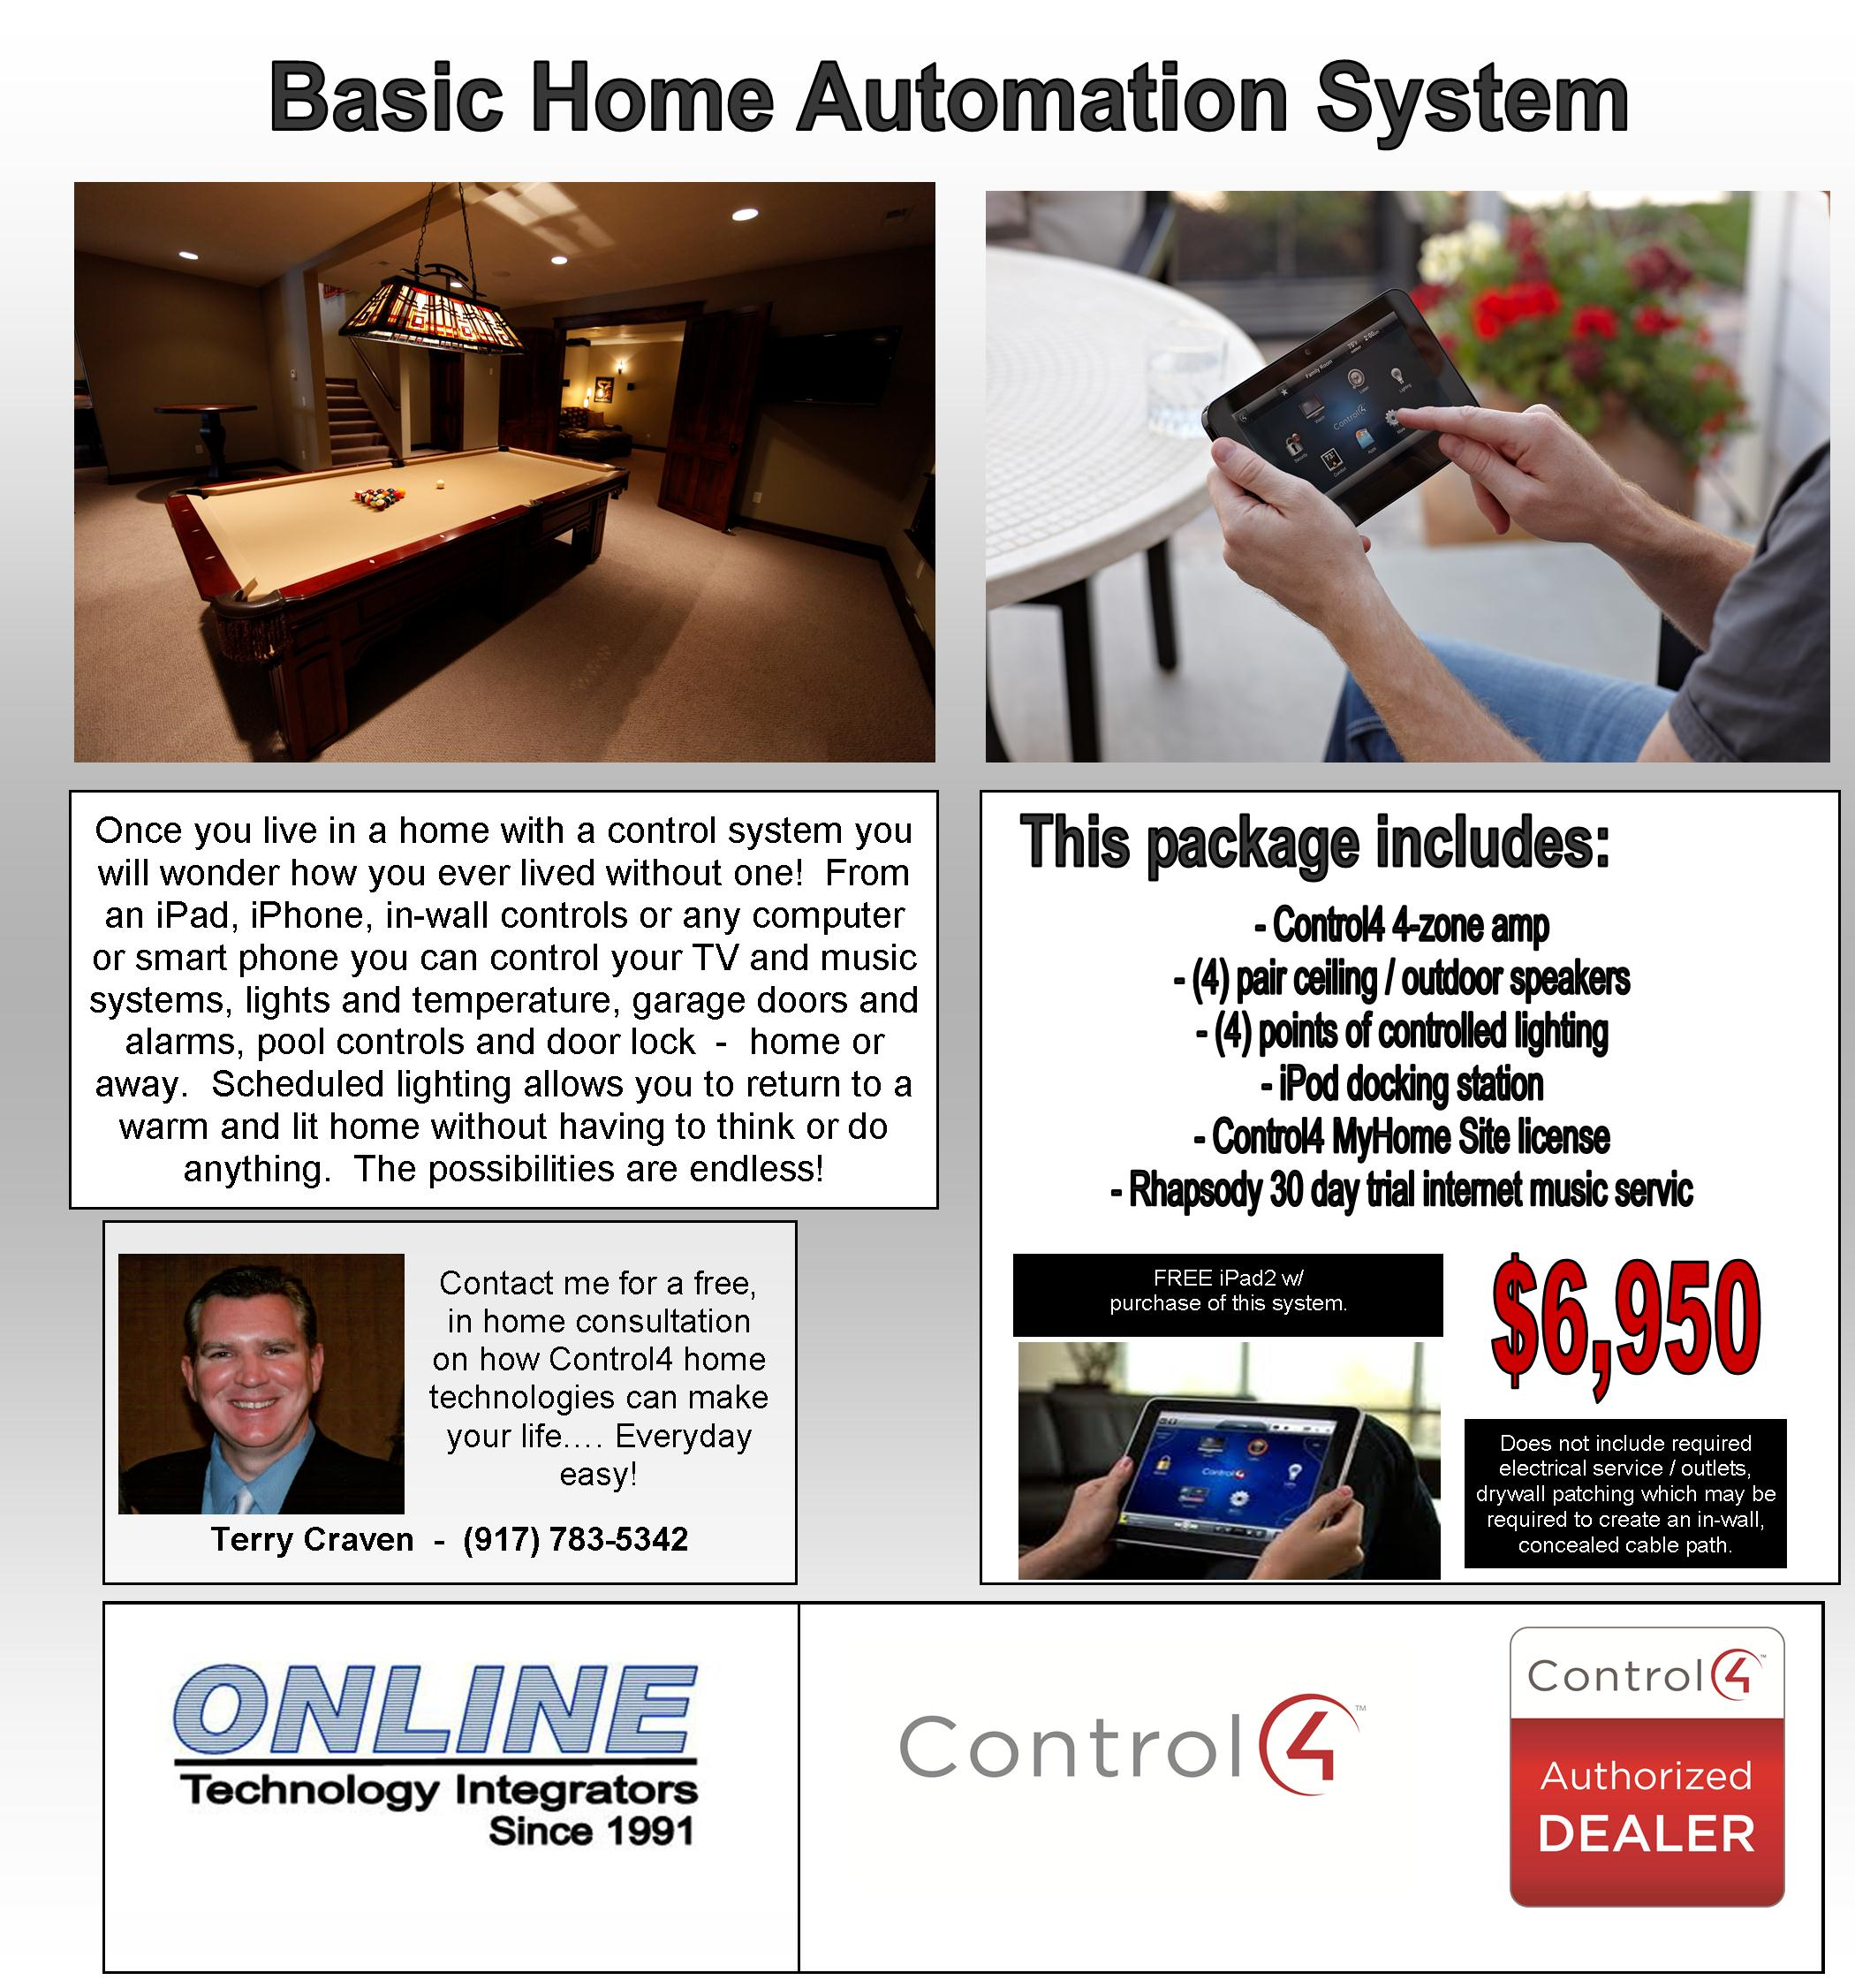 Basic C4 Home Automation